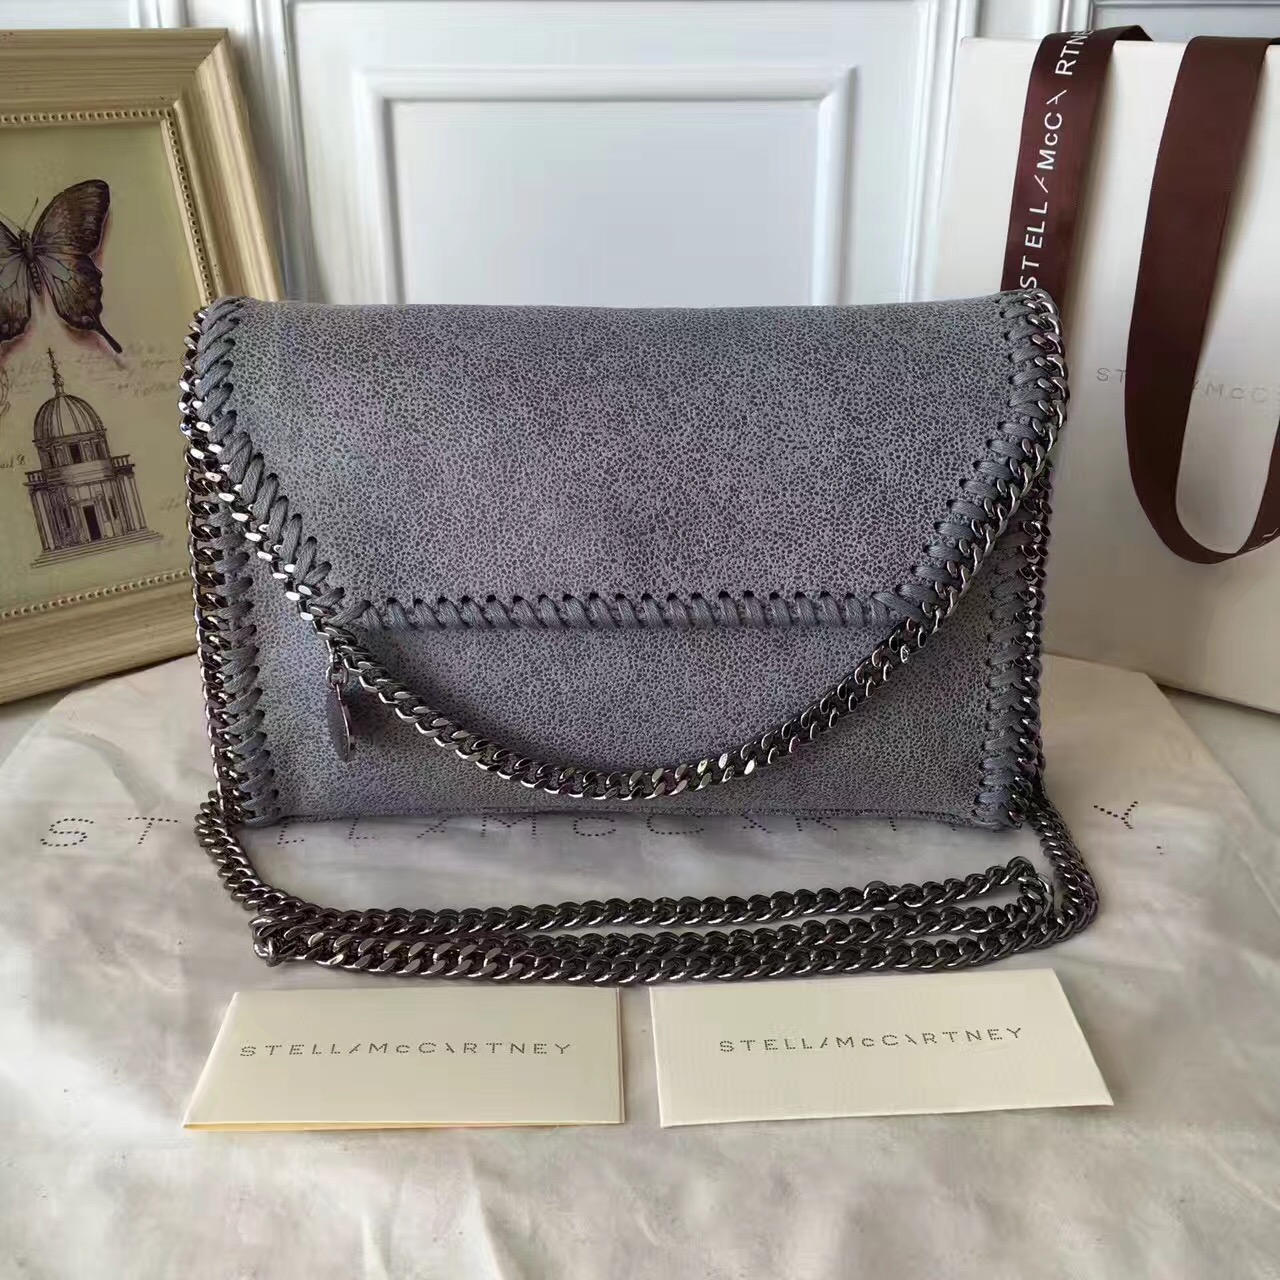 Stella McCartney Falabella Shaggy Deer Mini Bag Grey